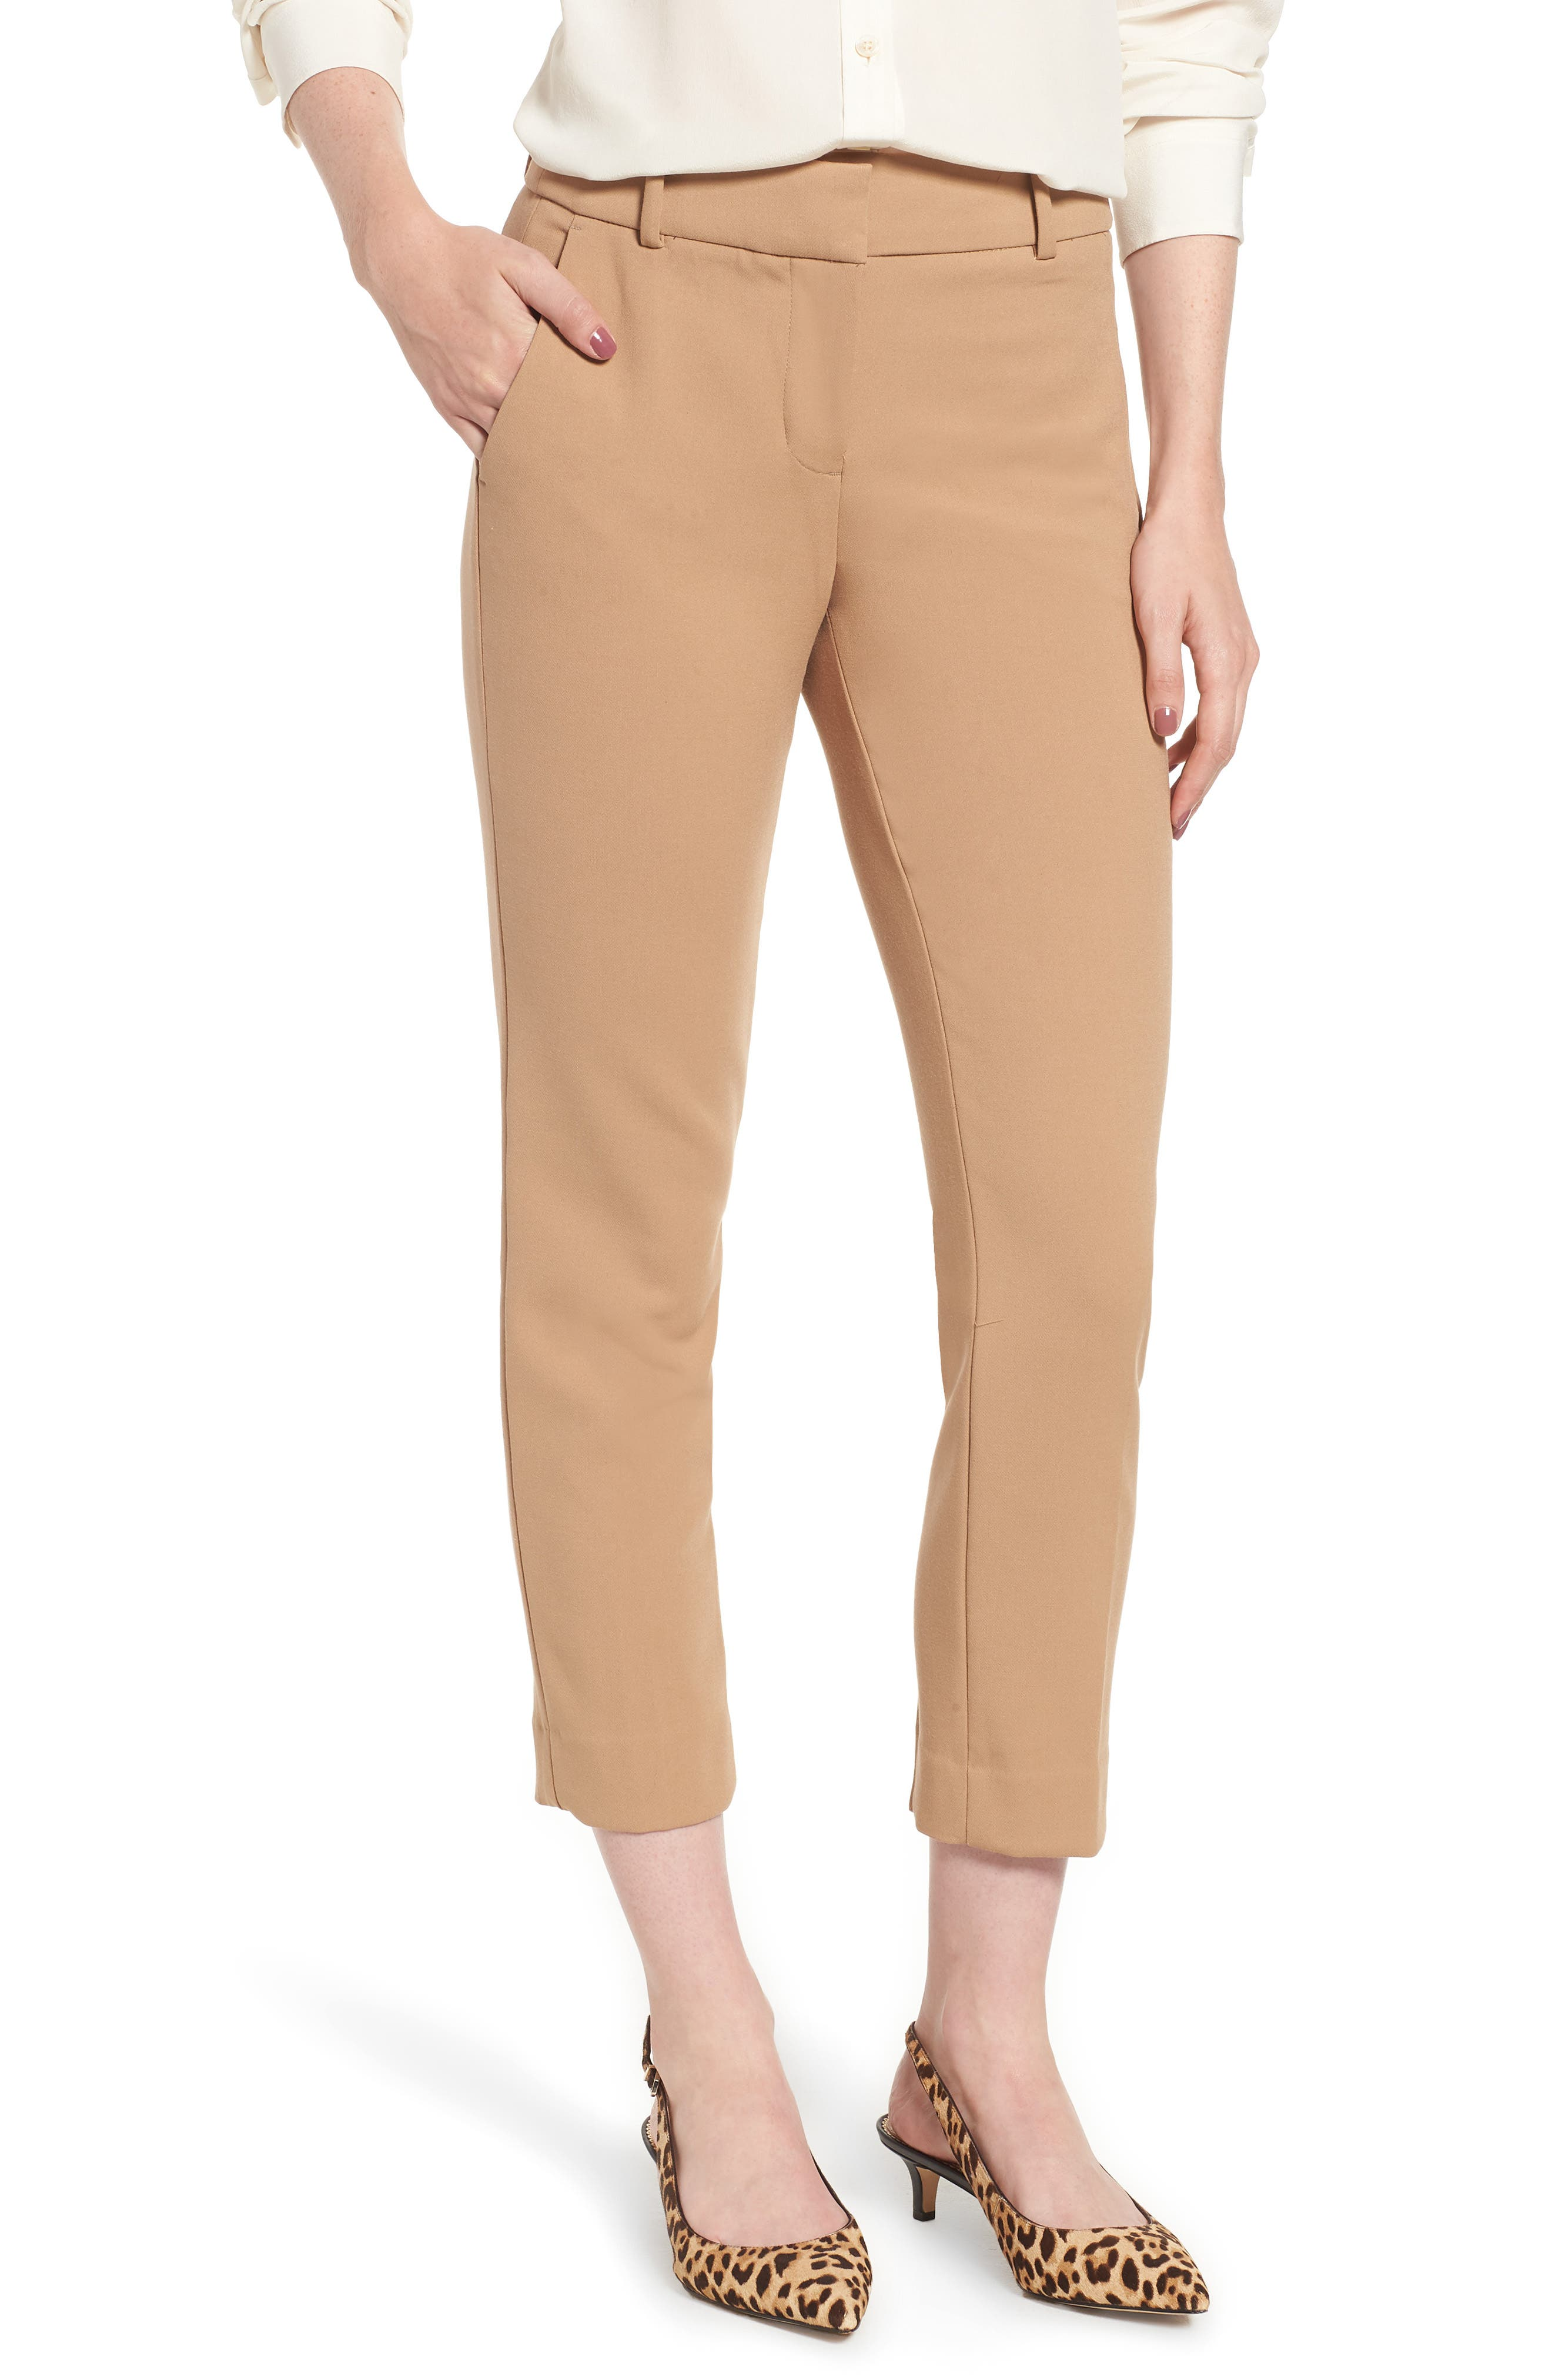 Cameron Four Season Crop Pants,                             Main thumbnail 1, color,                             HEATHER SADDLE